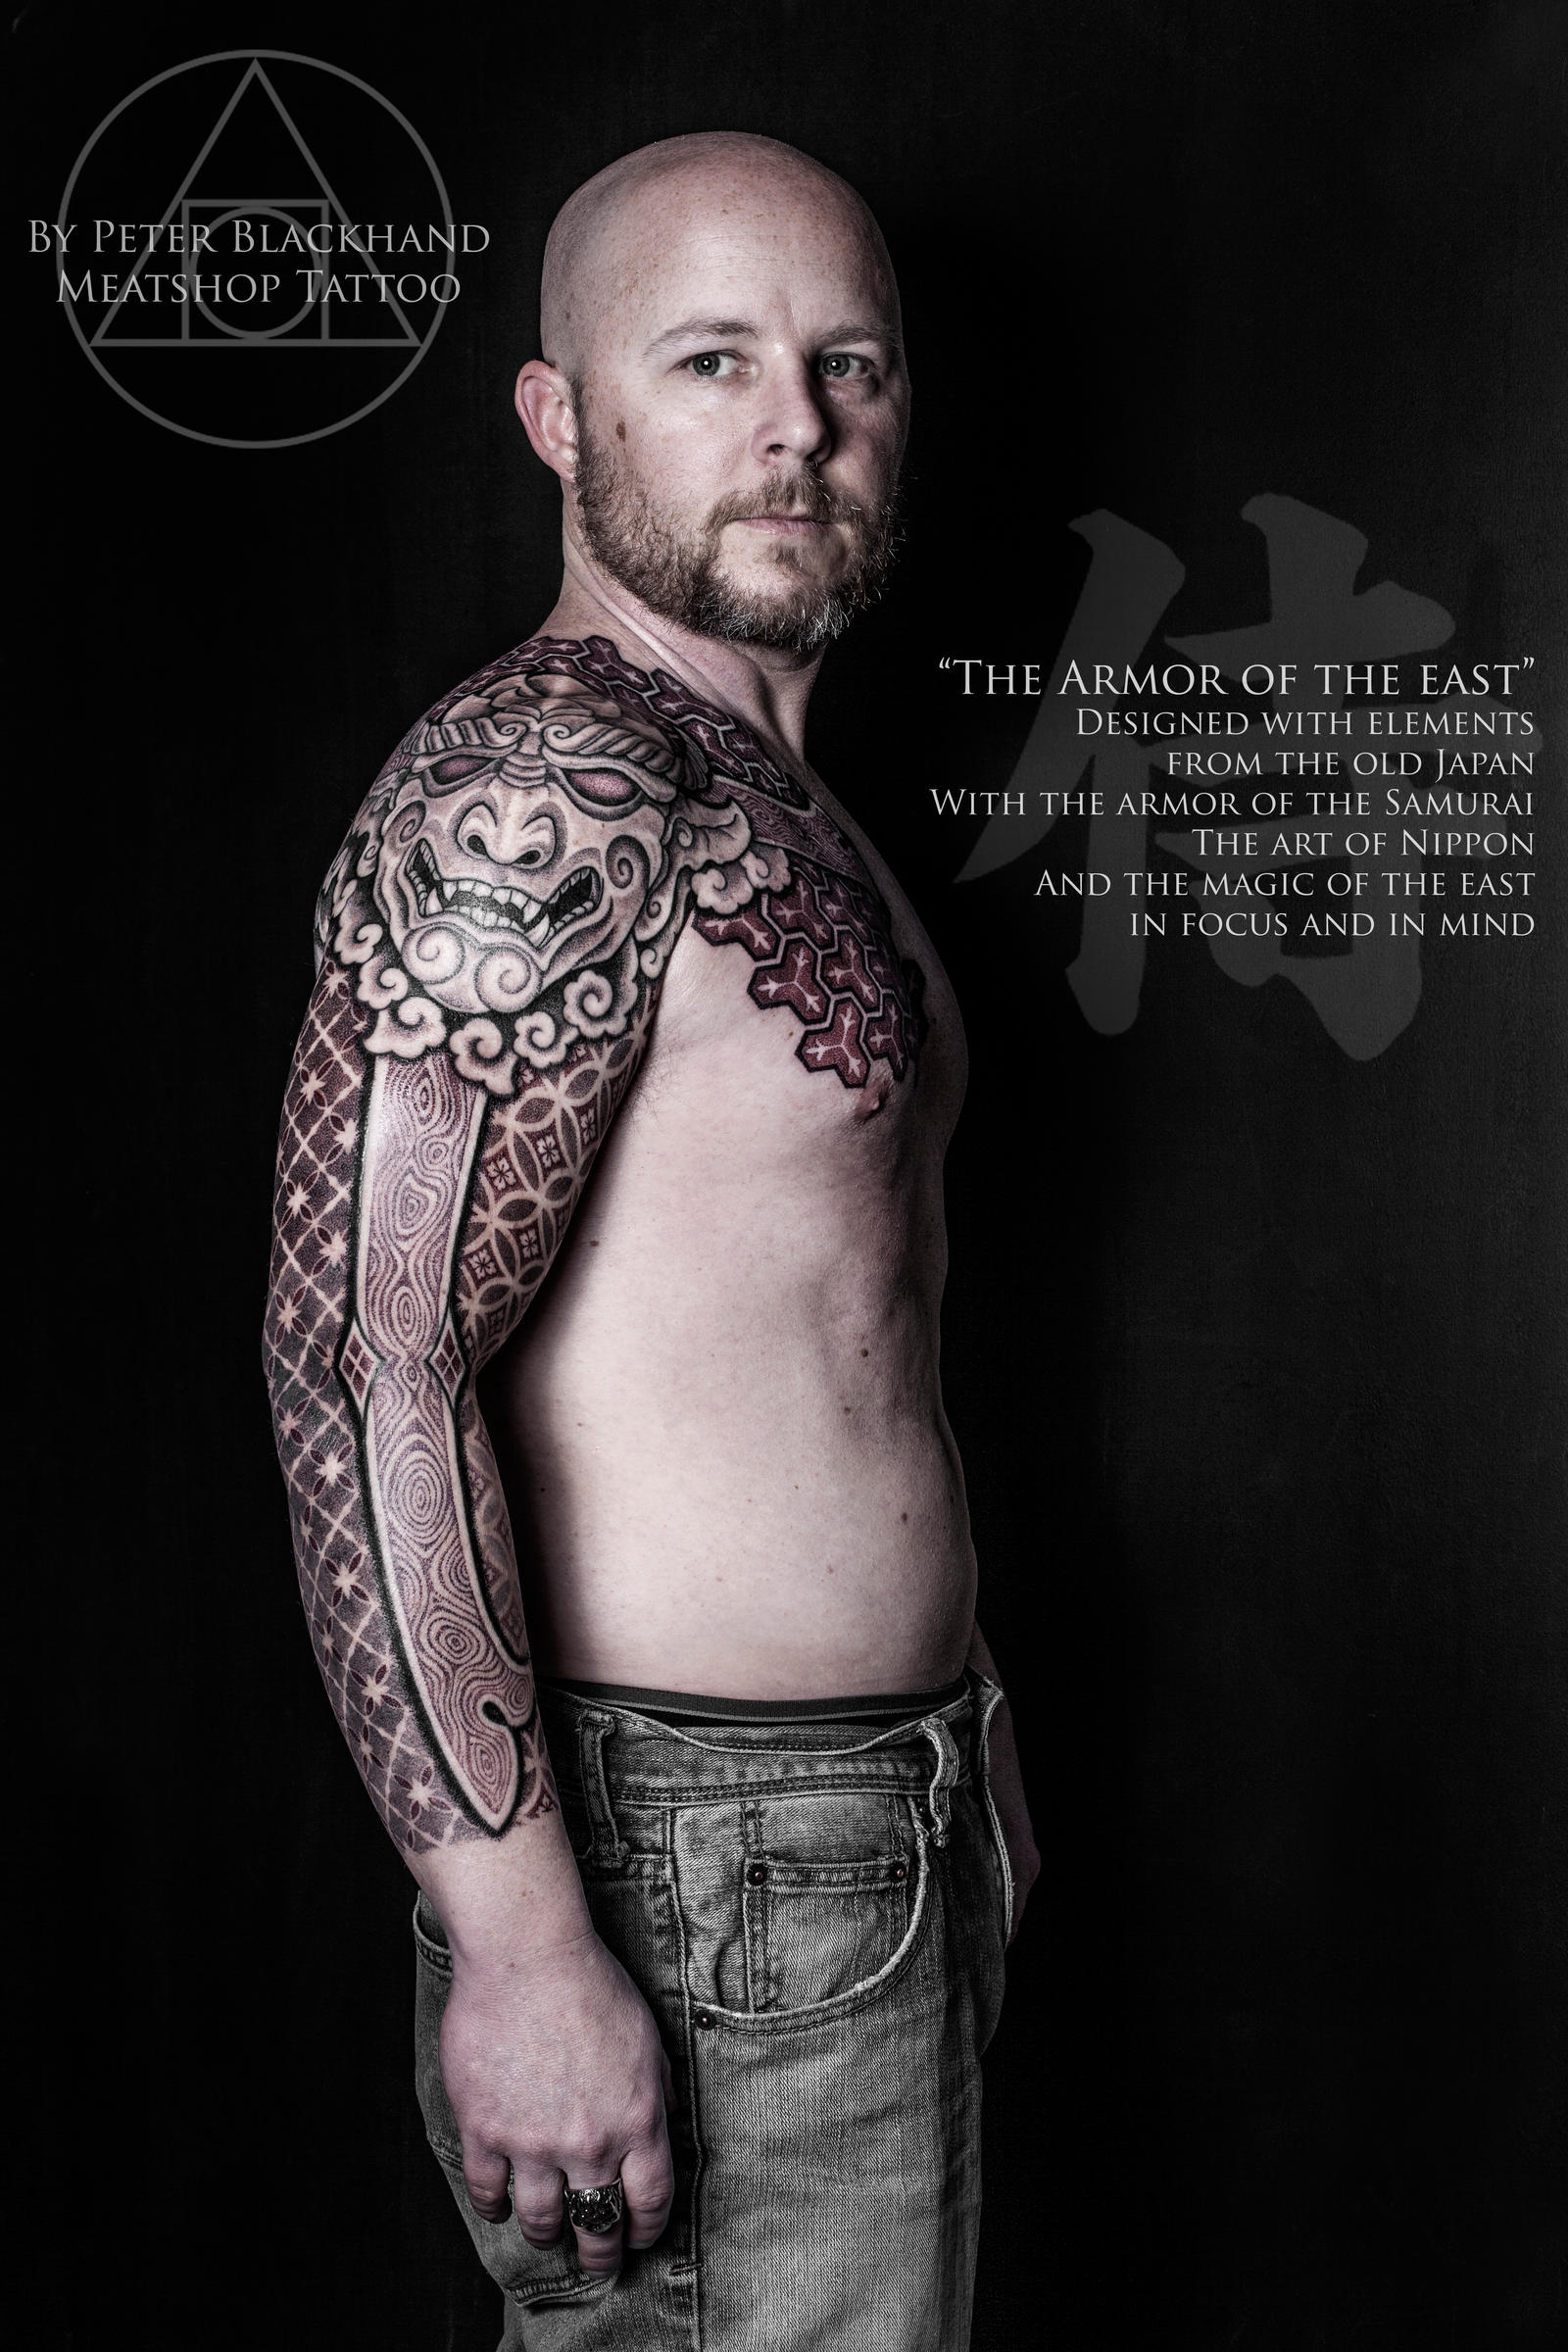 ... of the East tattoo by Peter Blackhand by Meatshop-Tattoo on DeviantArt